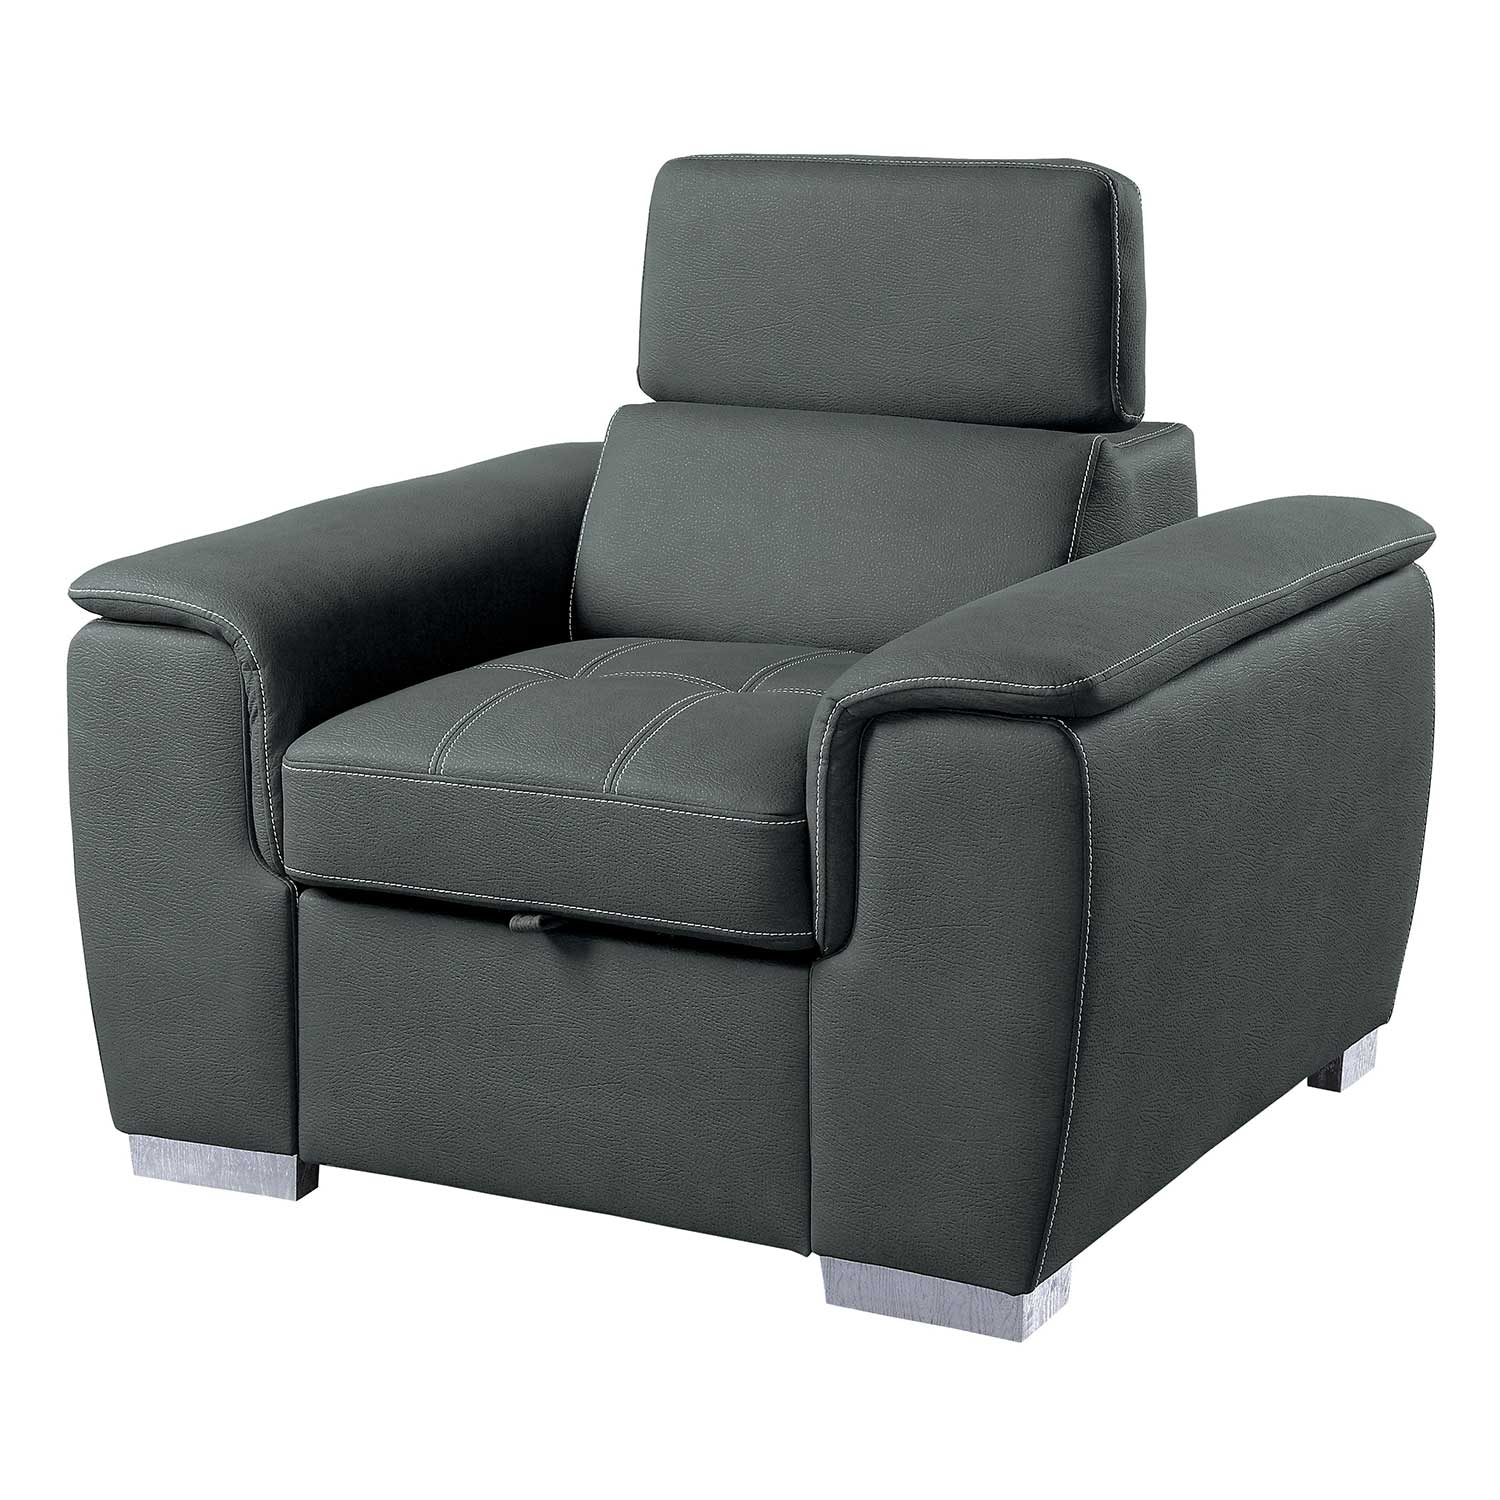 Homelegance Ferriday Chair with Pull-out Ottoman - Gray